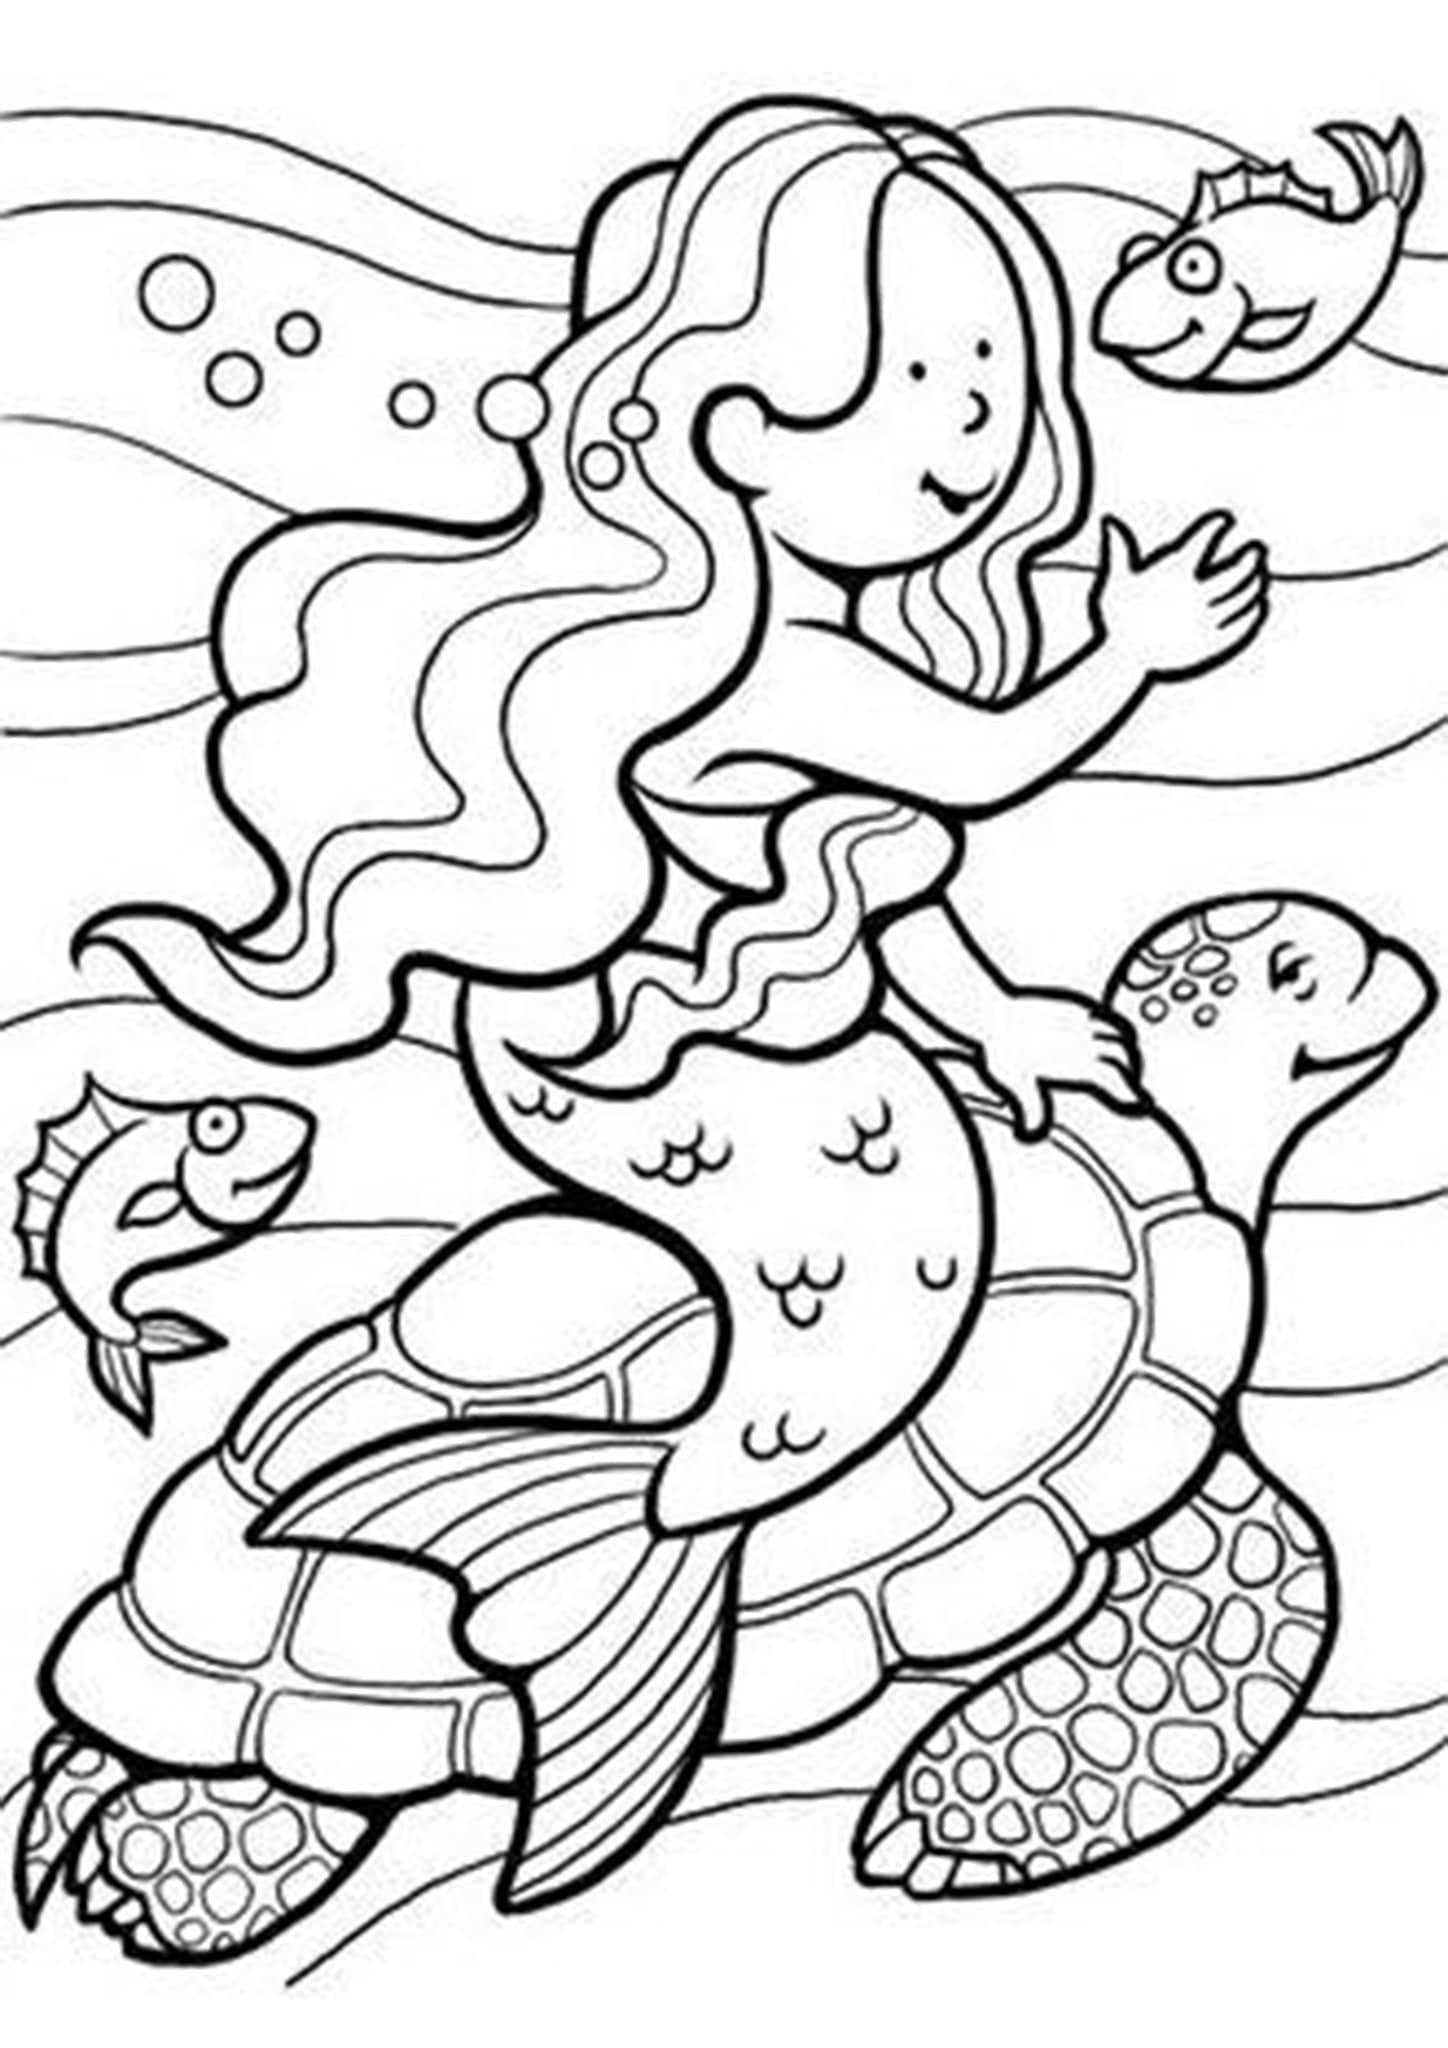 free easy coloring pages simple coloring pages to download and print for free free coloring easy pages